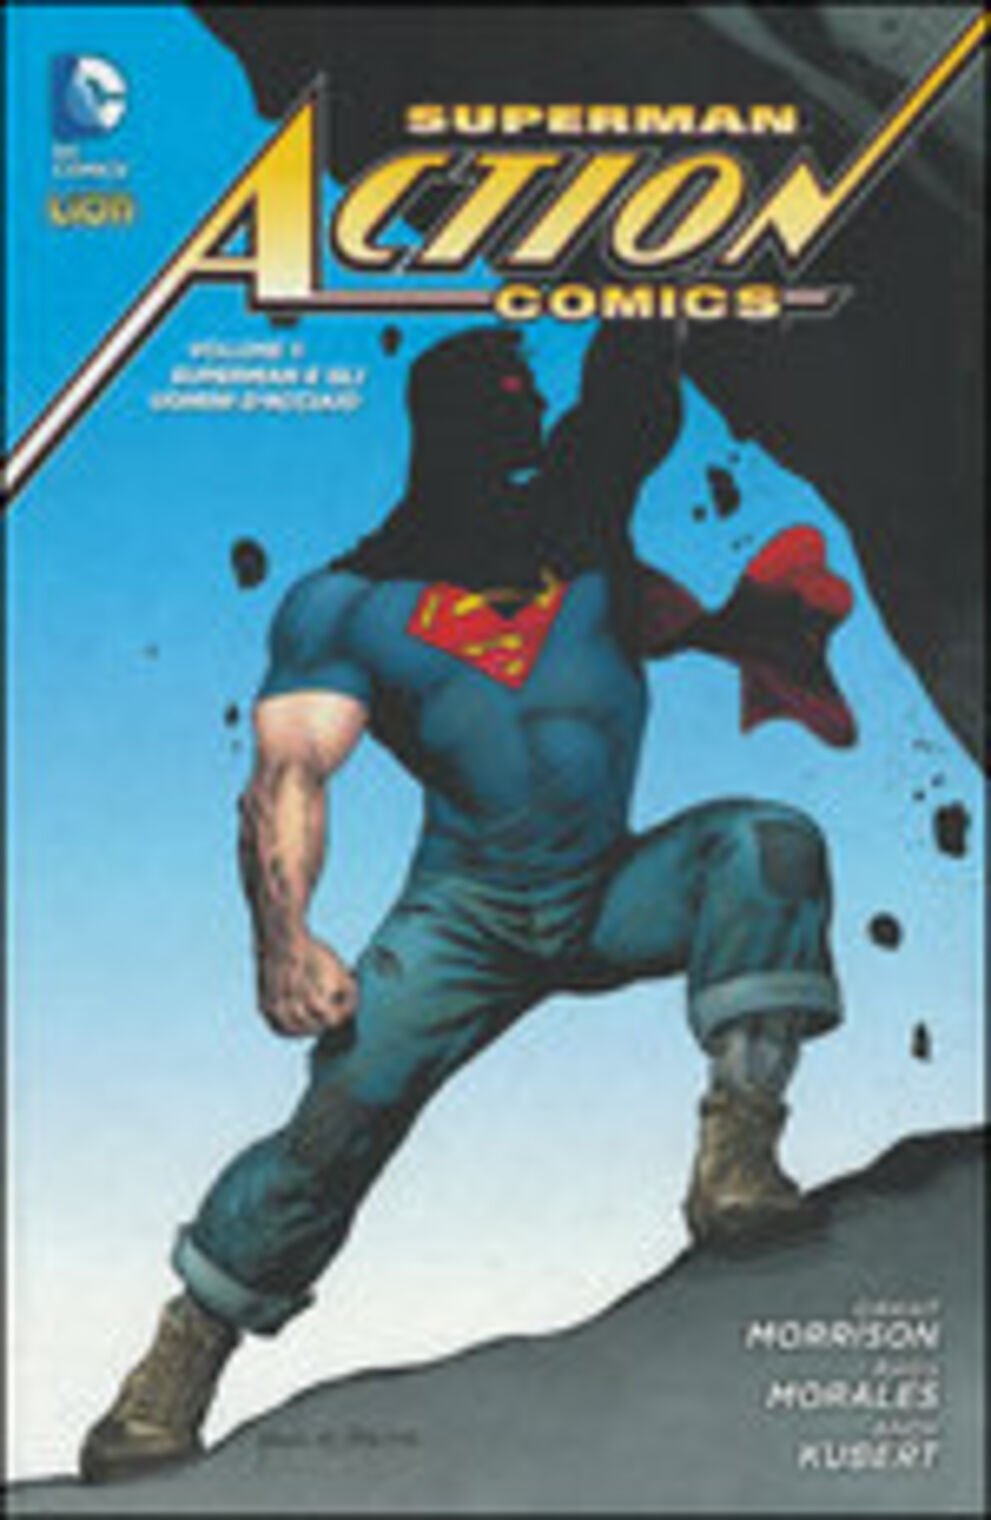 Superman e gli uomini d'acciaio. Superman action comics. Vol. 1